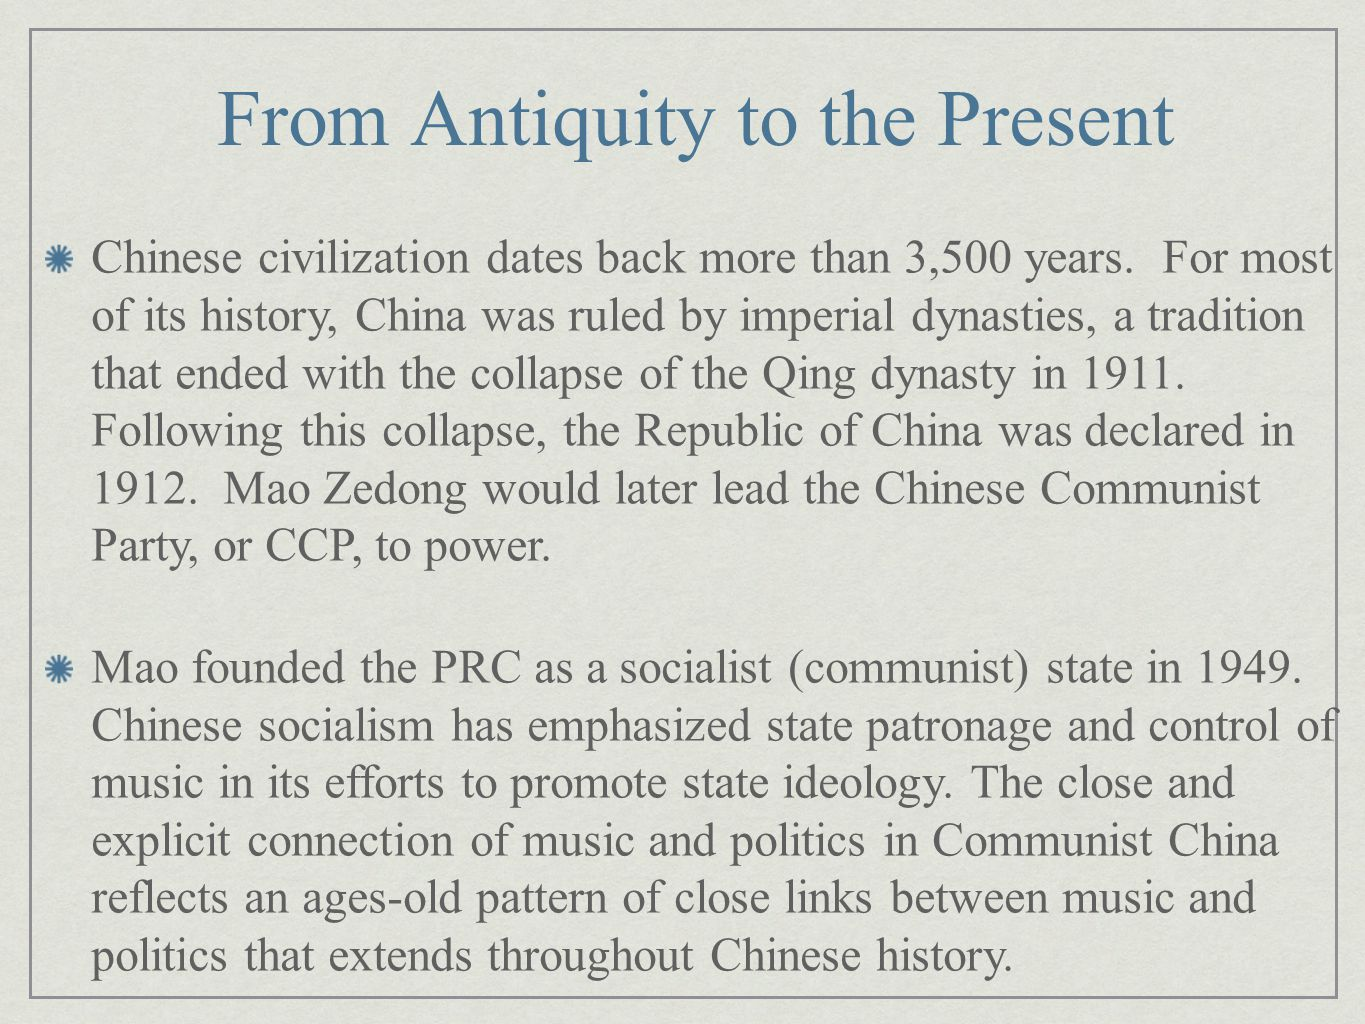 There have been three main historical periods in the history of Communist China: The initial communist era of Mao Zedong's regime, 1949- 1965, in which Chinese society was reformed under Communist rule.